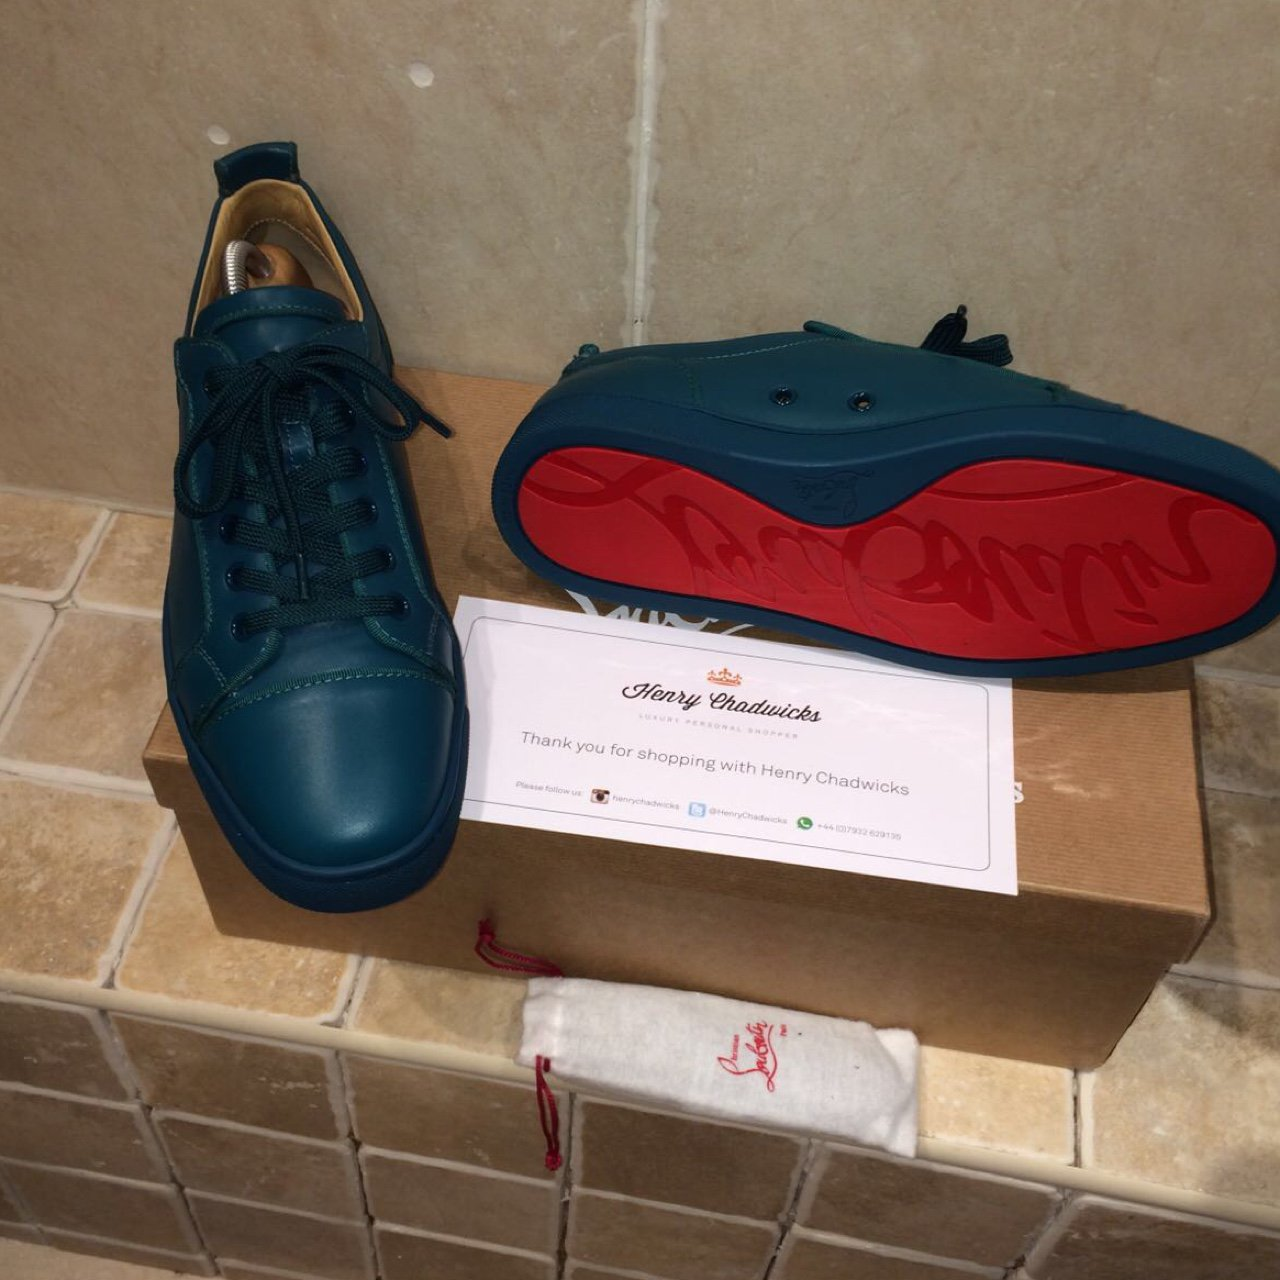 941df7c4672 Christian Louboutin men s trainers worn once indoors the is - Depop